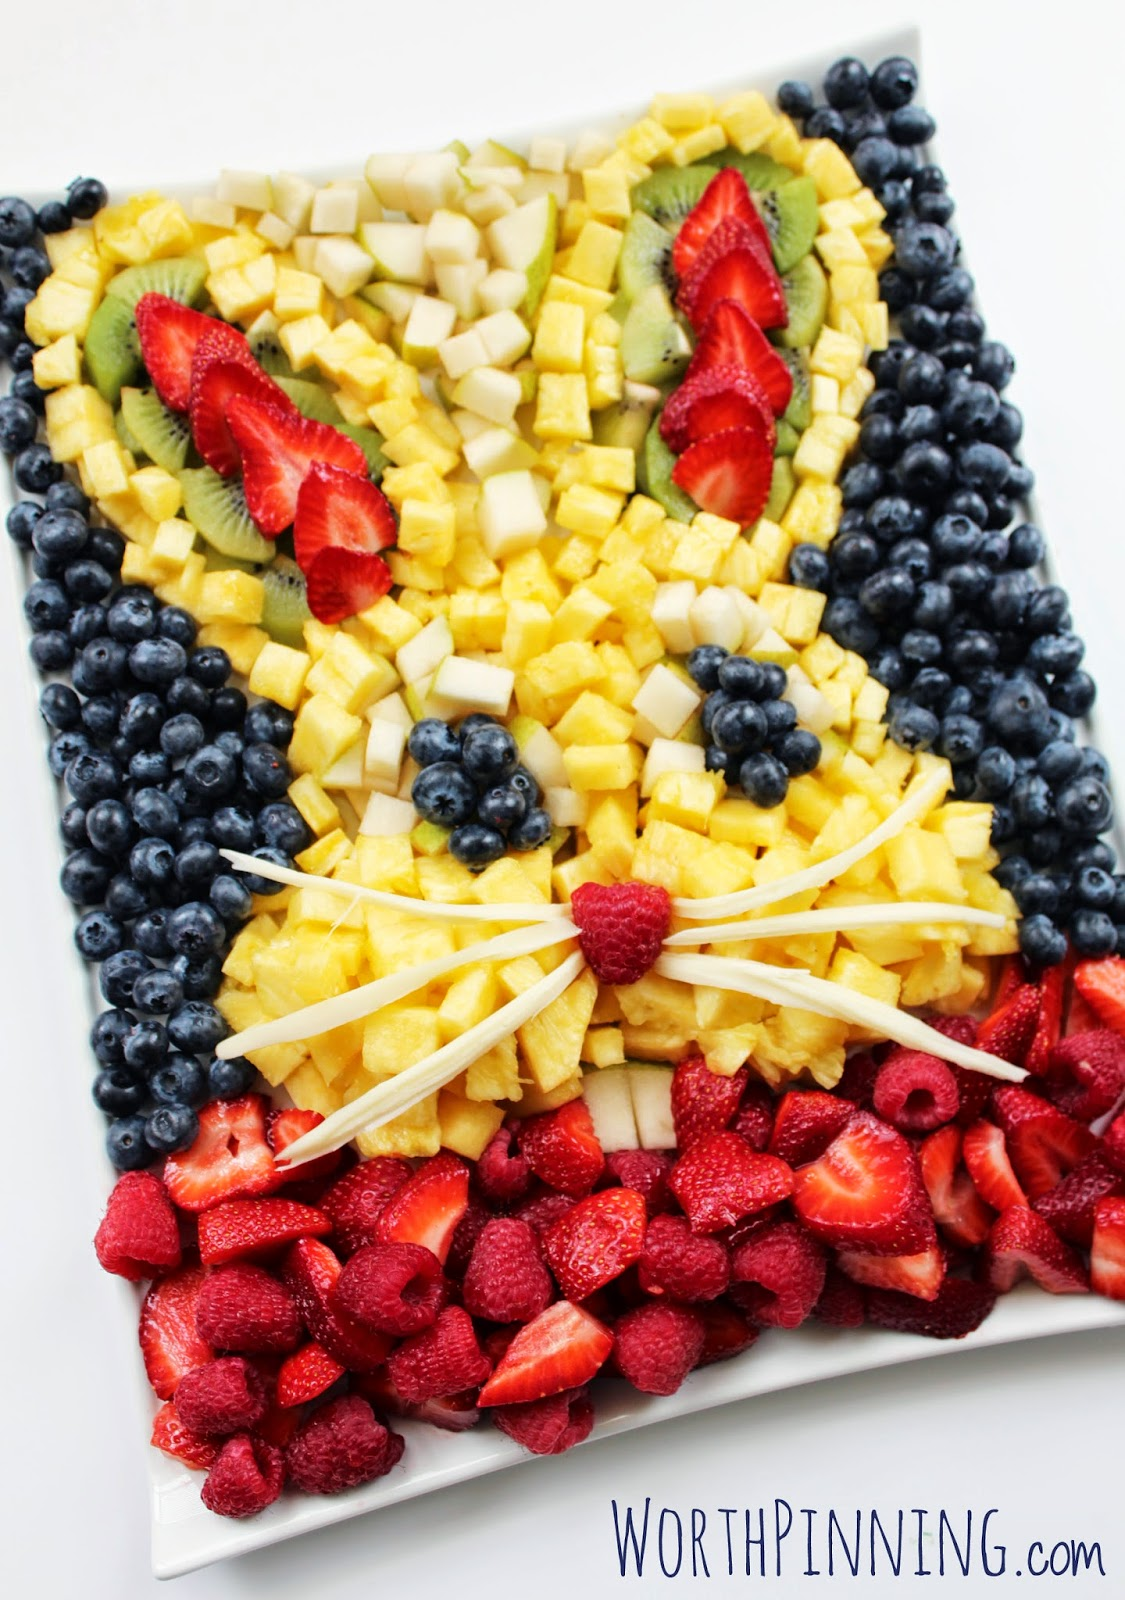 14 Fresh and Creative Fruit & Veggie Tray Decorating Ideas